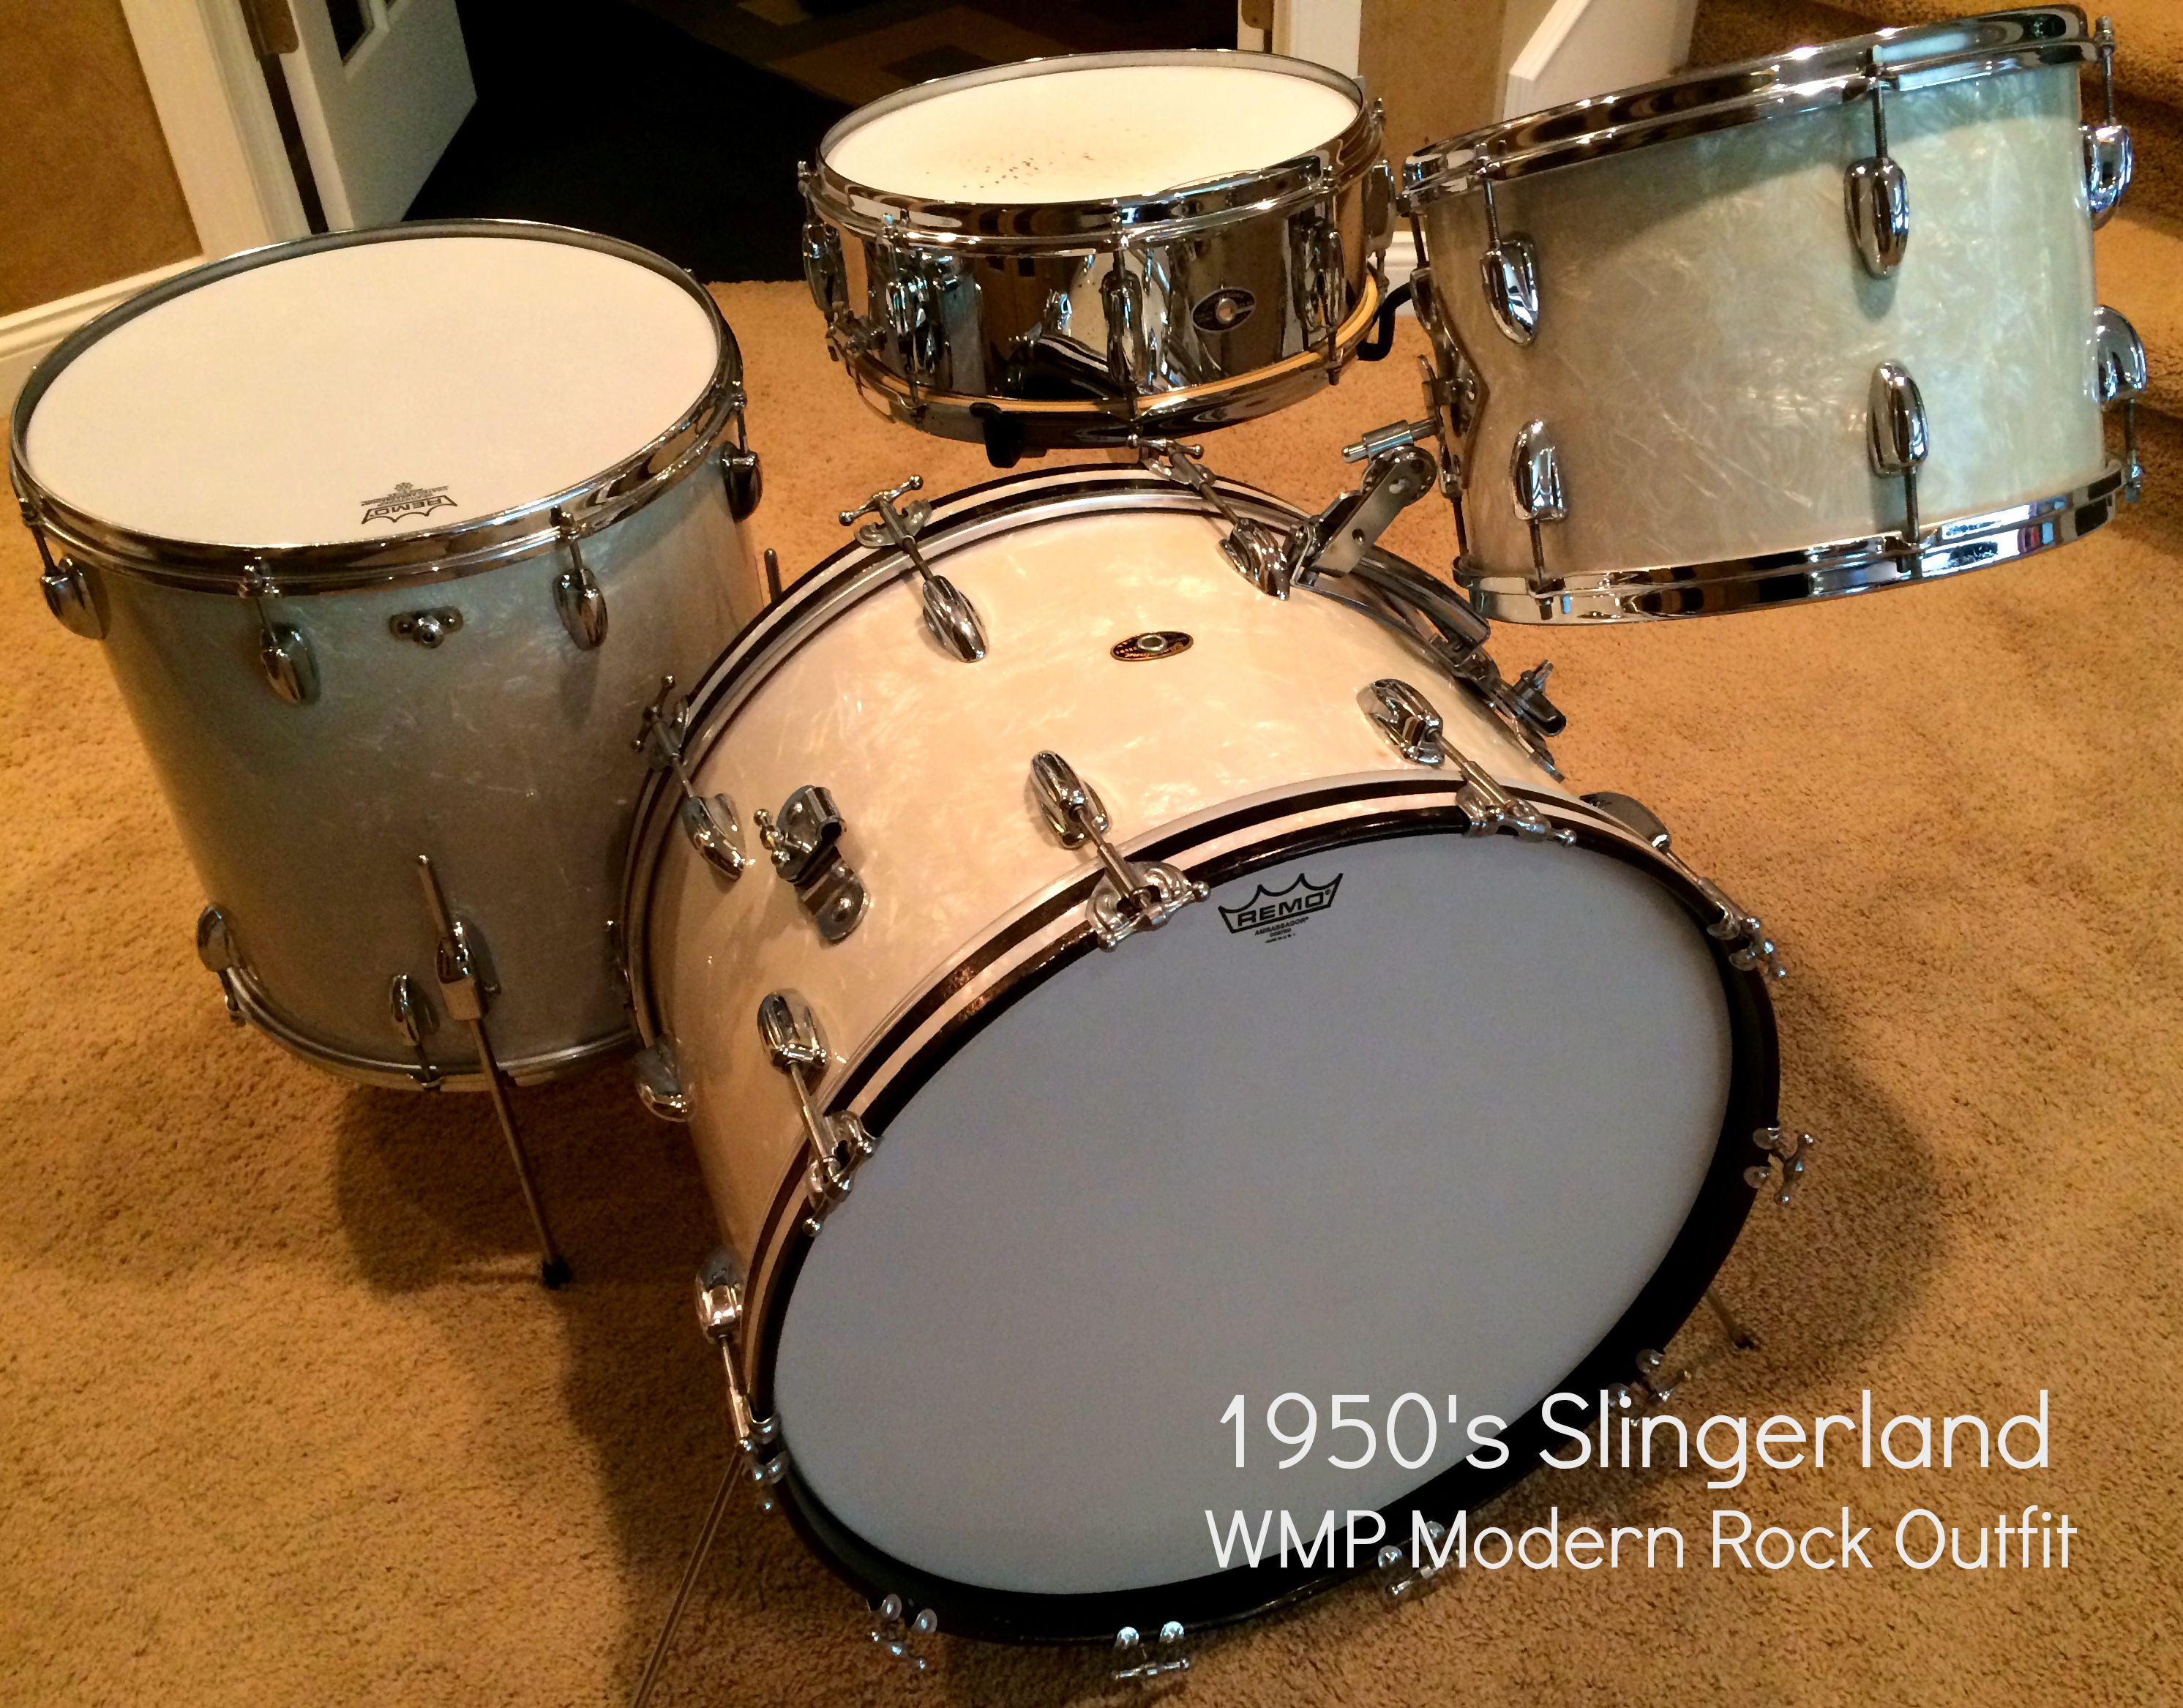 Late 50's Slingerland Modern Rock Outfit In Classic White Marine Pearl  Buddyrific! Vintage Drumsrock